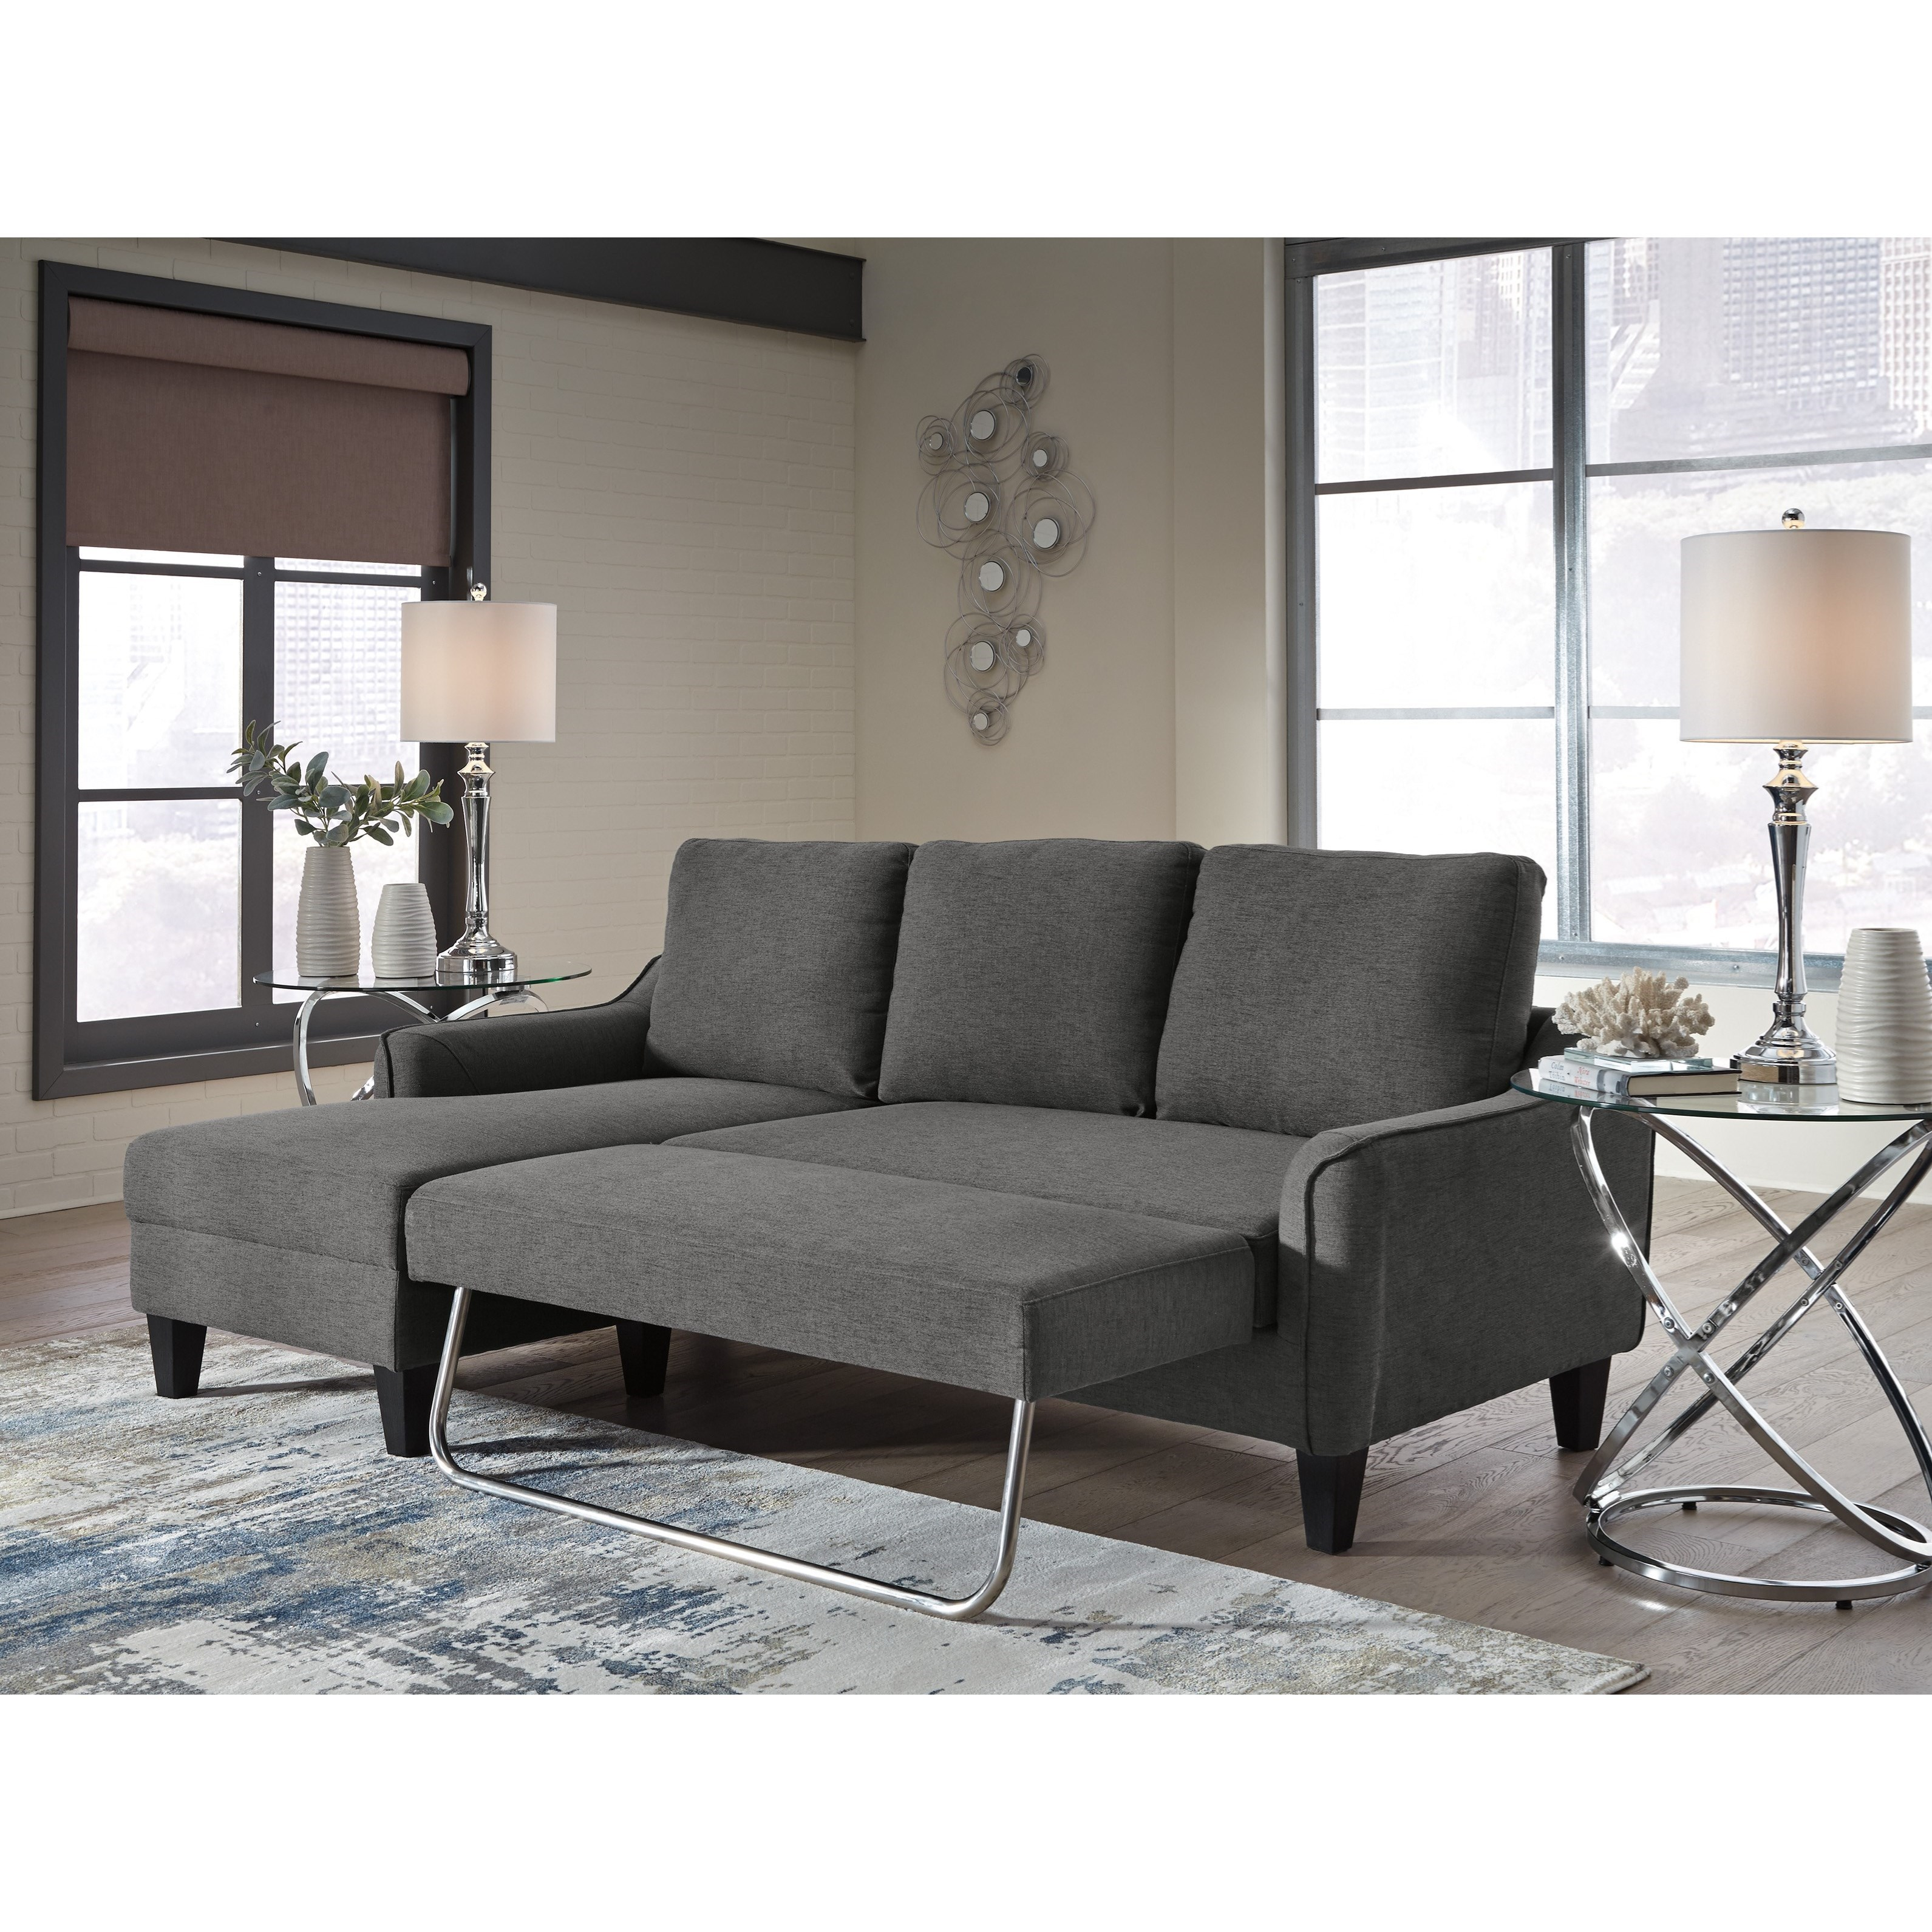 Jacob Queen Sofa Sleeper With Pullout Cushion Rotmans